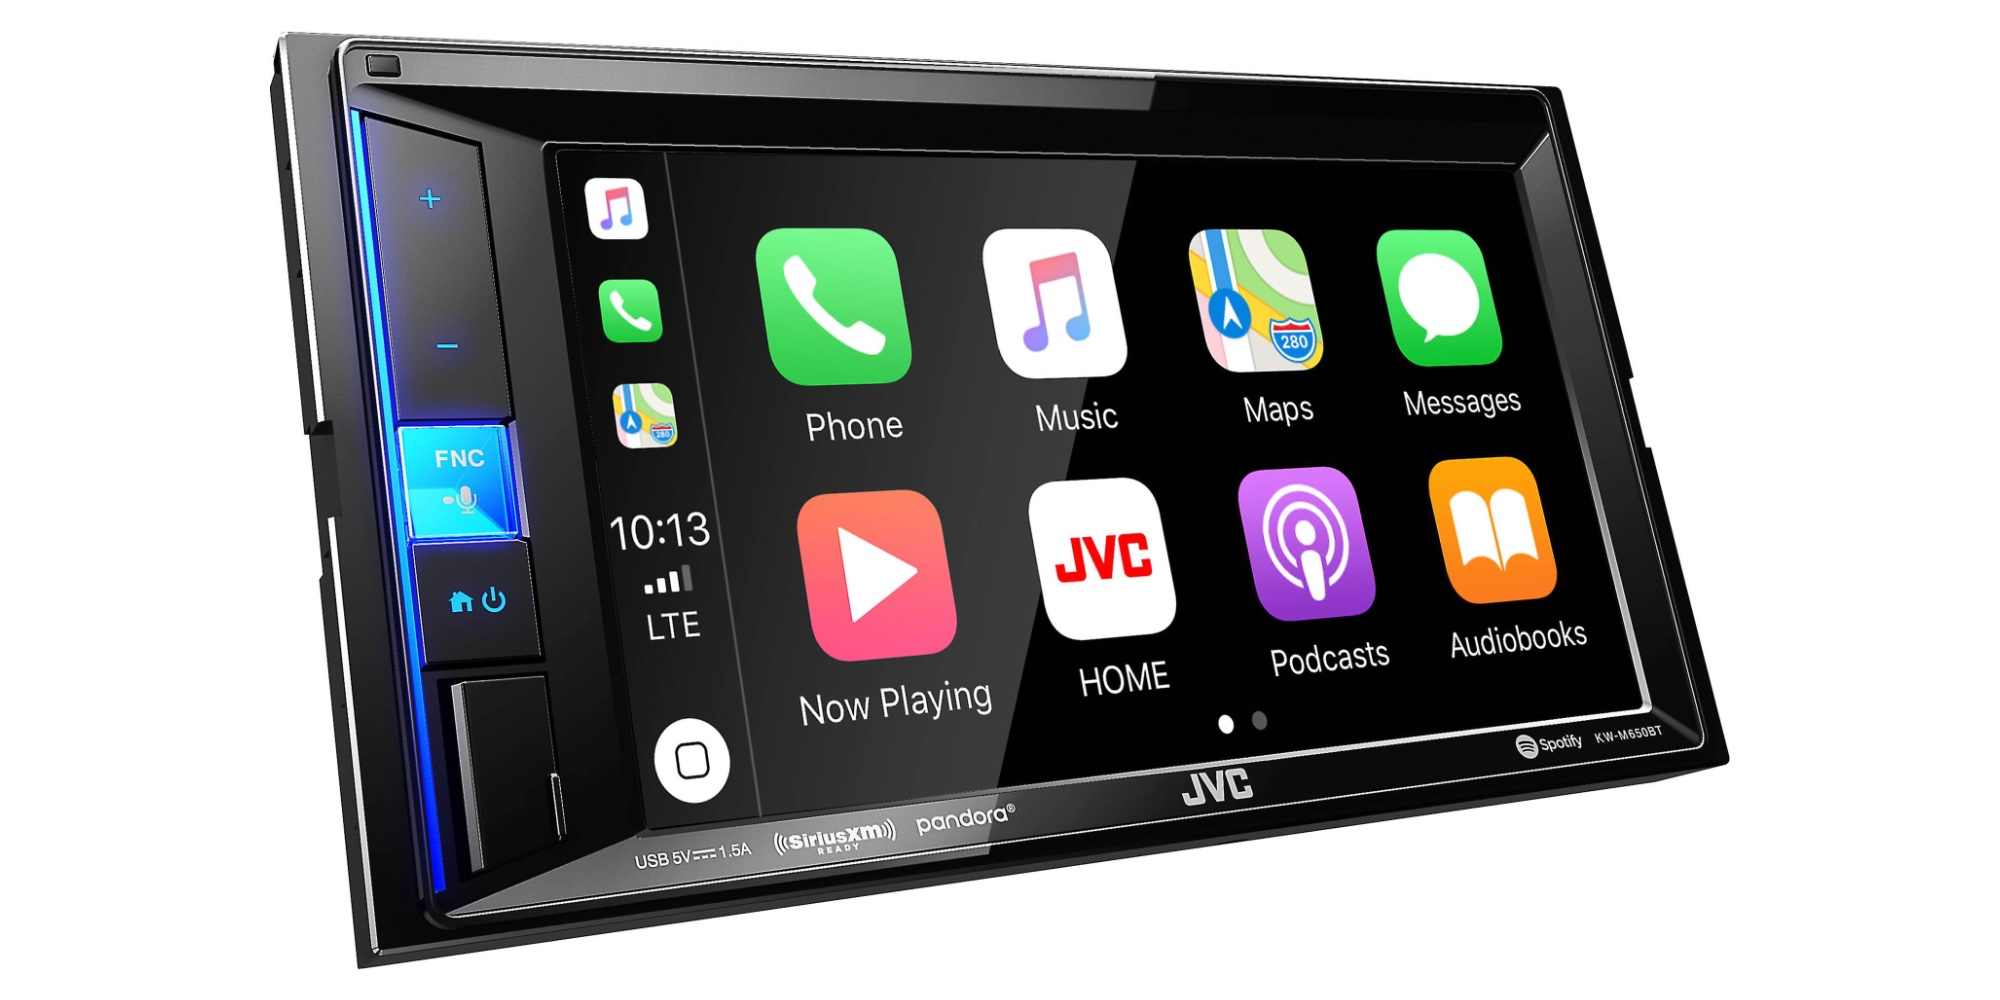 Bring CarPlay to your ride for $250 with JVC's 6.2-inch receiver (Save $100) - 9to5Toys